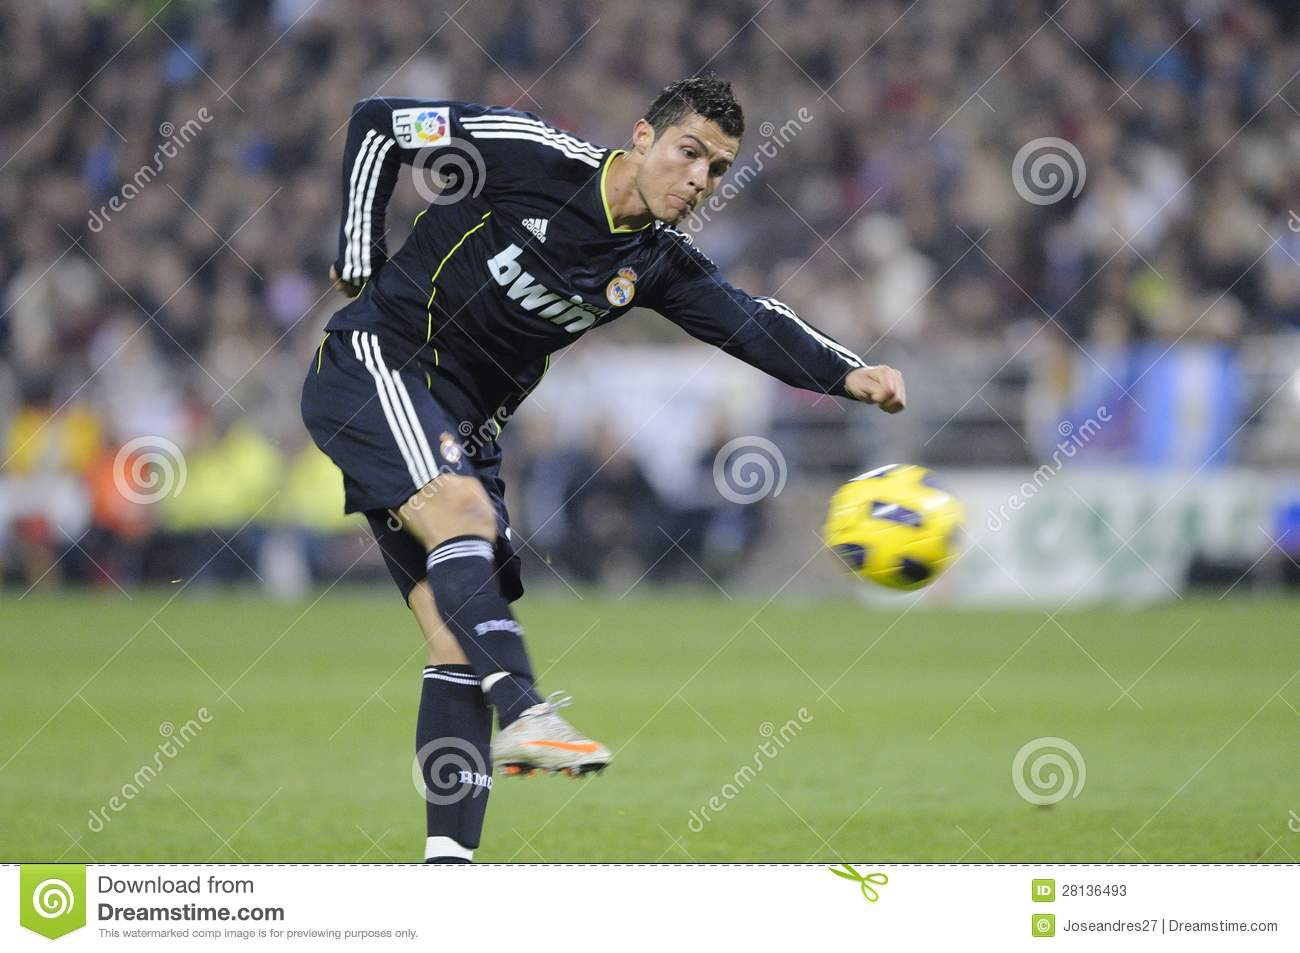 35 Cristiano Ronaldo Shooting Photos Free Royalty Free Stock Photos From Dreamstime